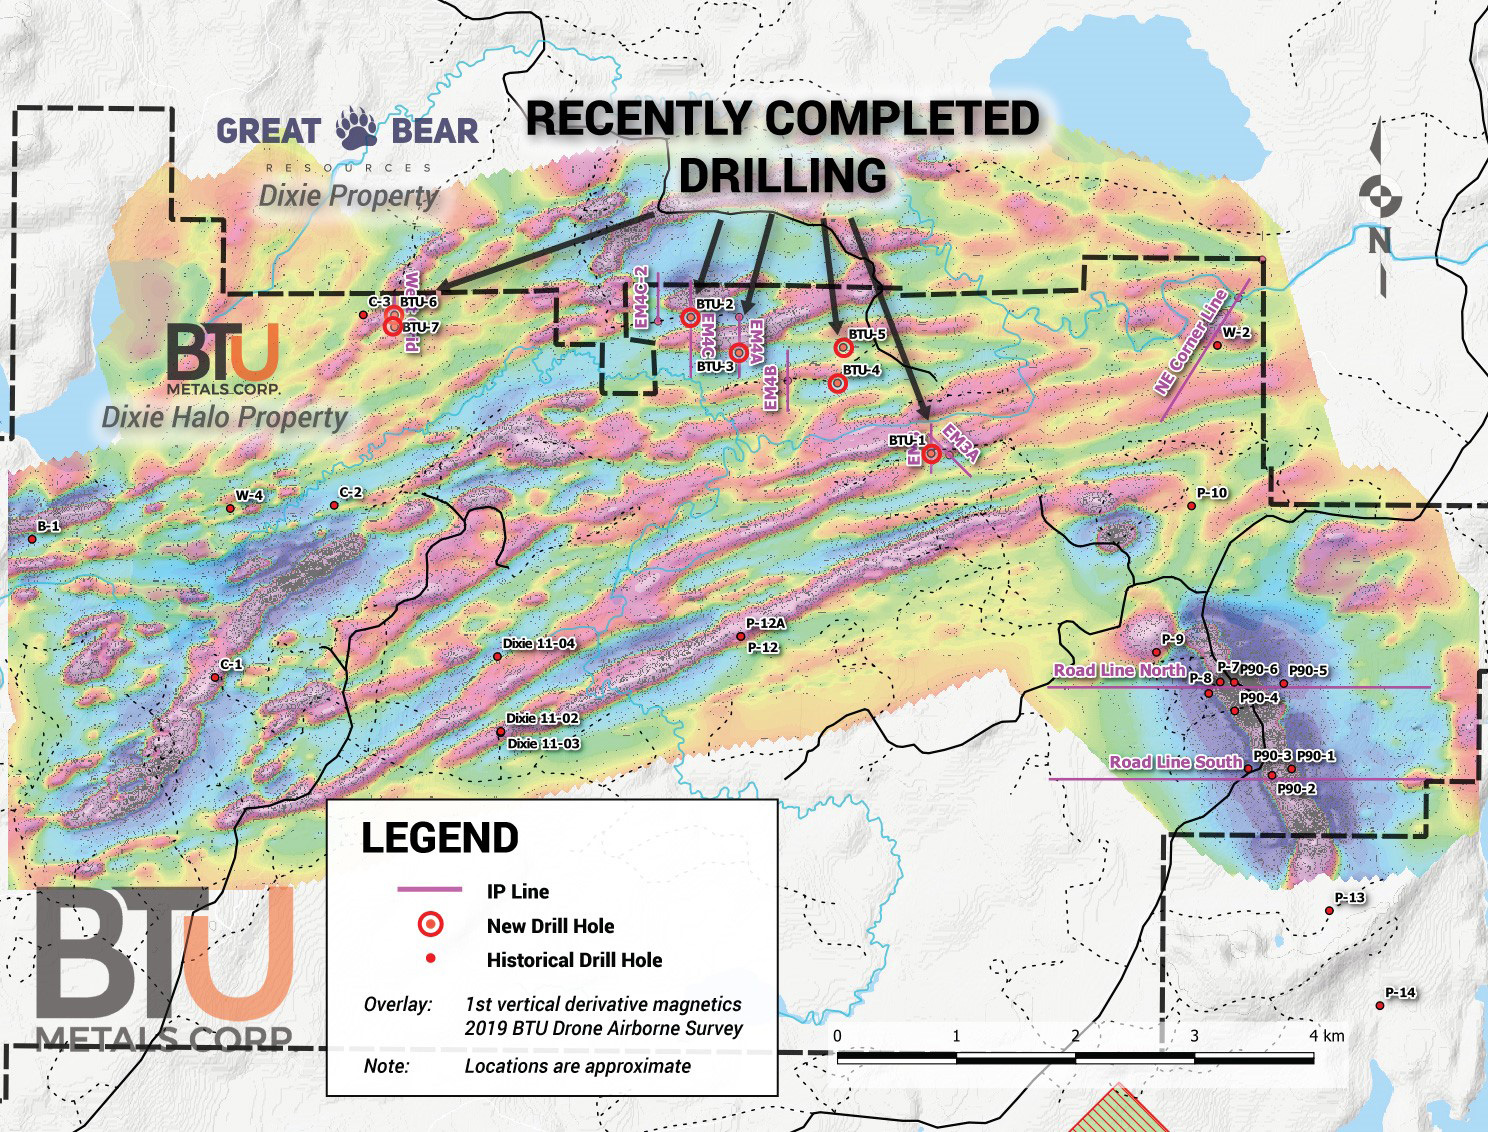 BTU Metals - A map showing IP lines and recently completed drill holes